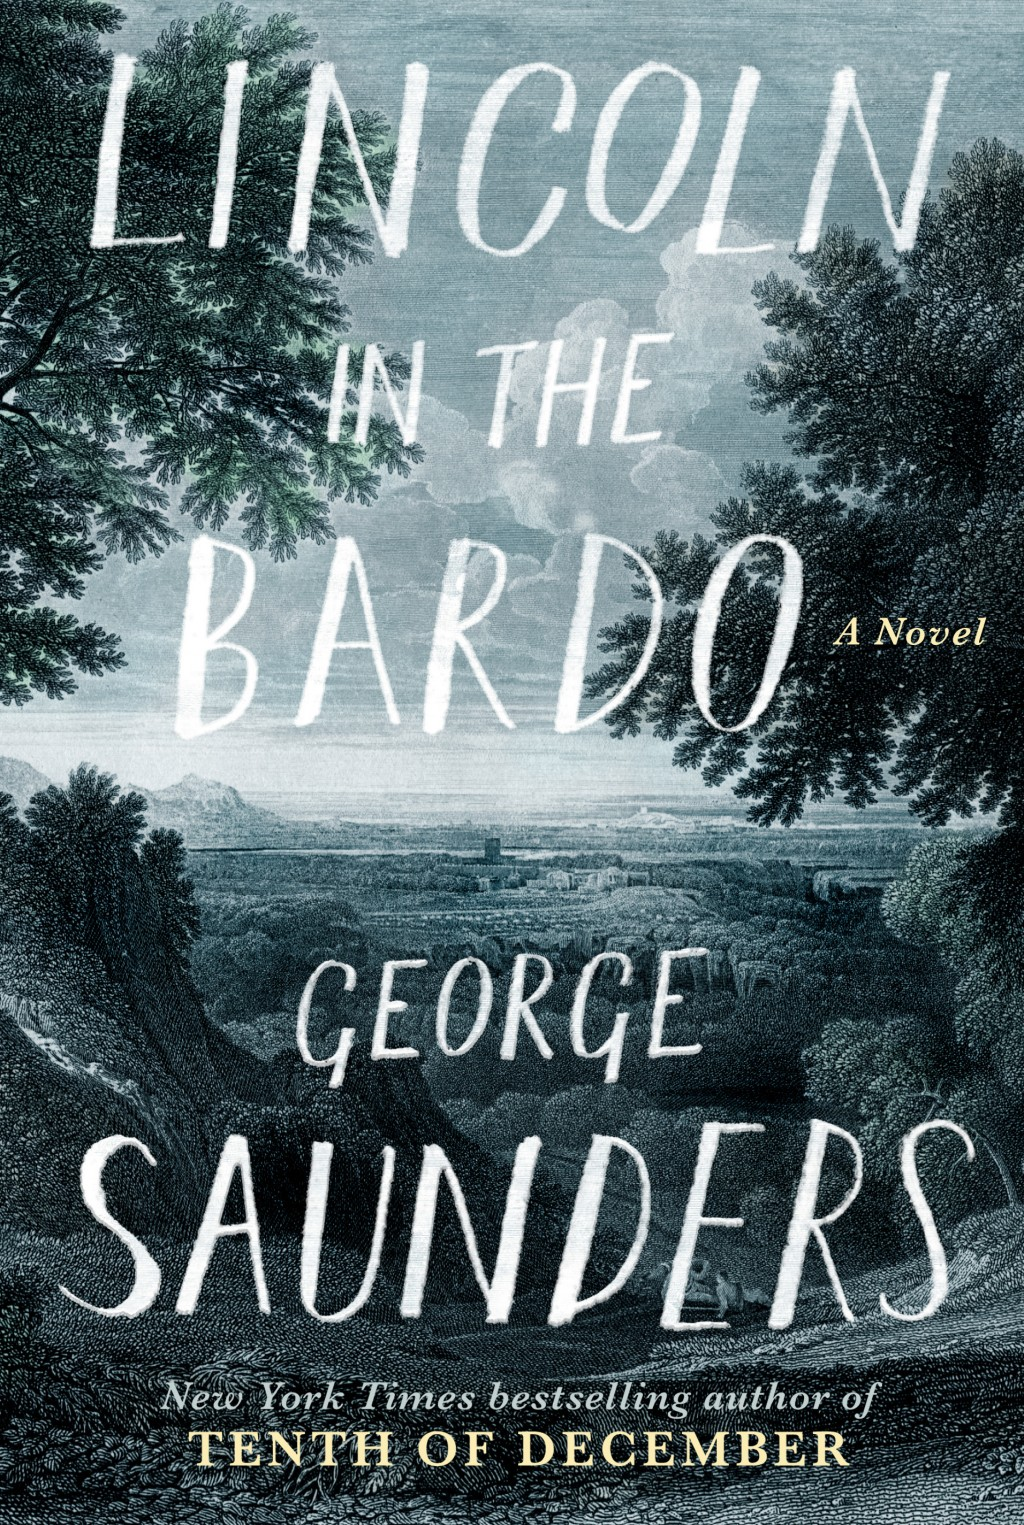 """Lincoln in the Bardo"" by George Saunders (Image: University Book Store / Random House)"